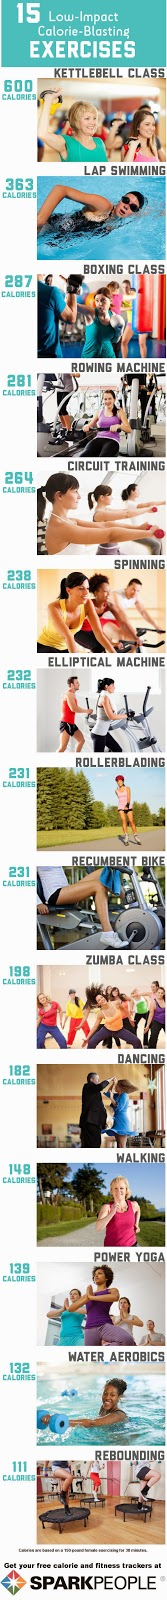 http://www.sparkpeople.com/resource/fitness_articles.asp?id=1843